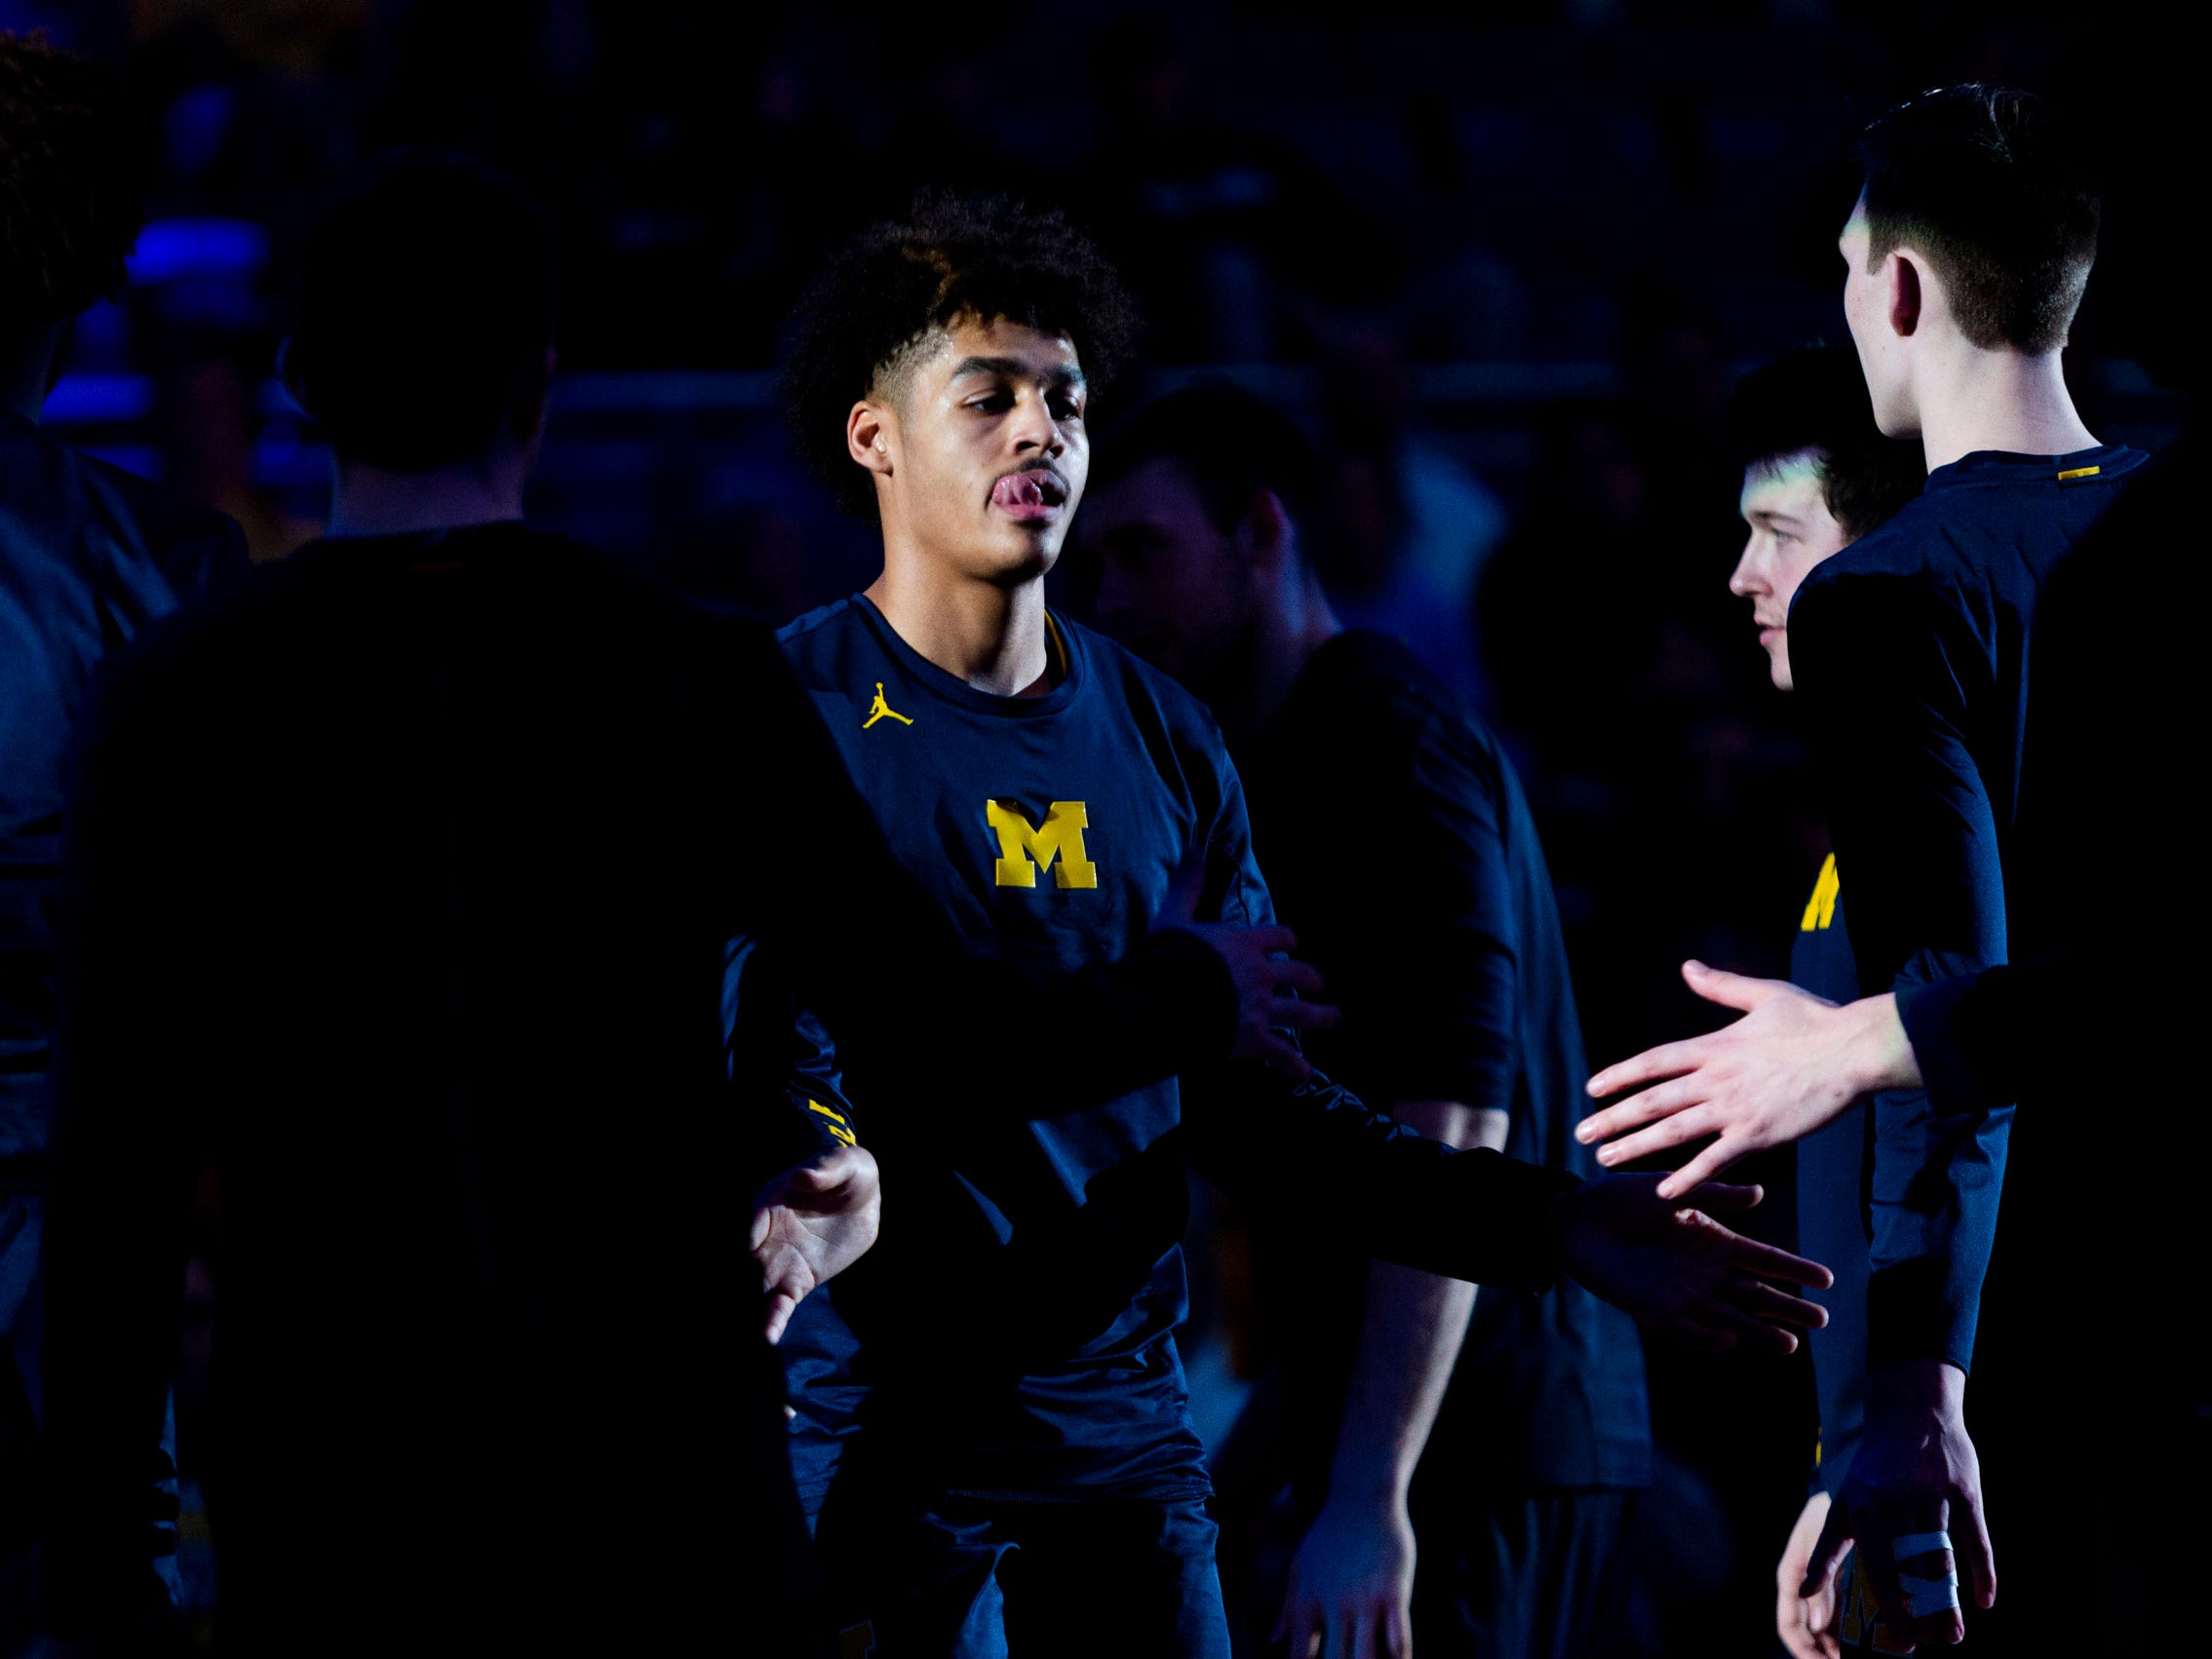 Michigan guard Jordan Poole during player introductions prior to the game against Penn State, Tuesday, Feb. 12, 2019, in State College, Pa.